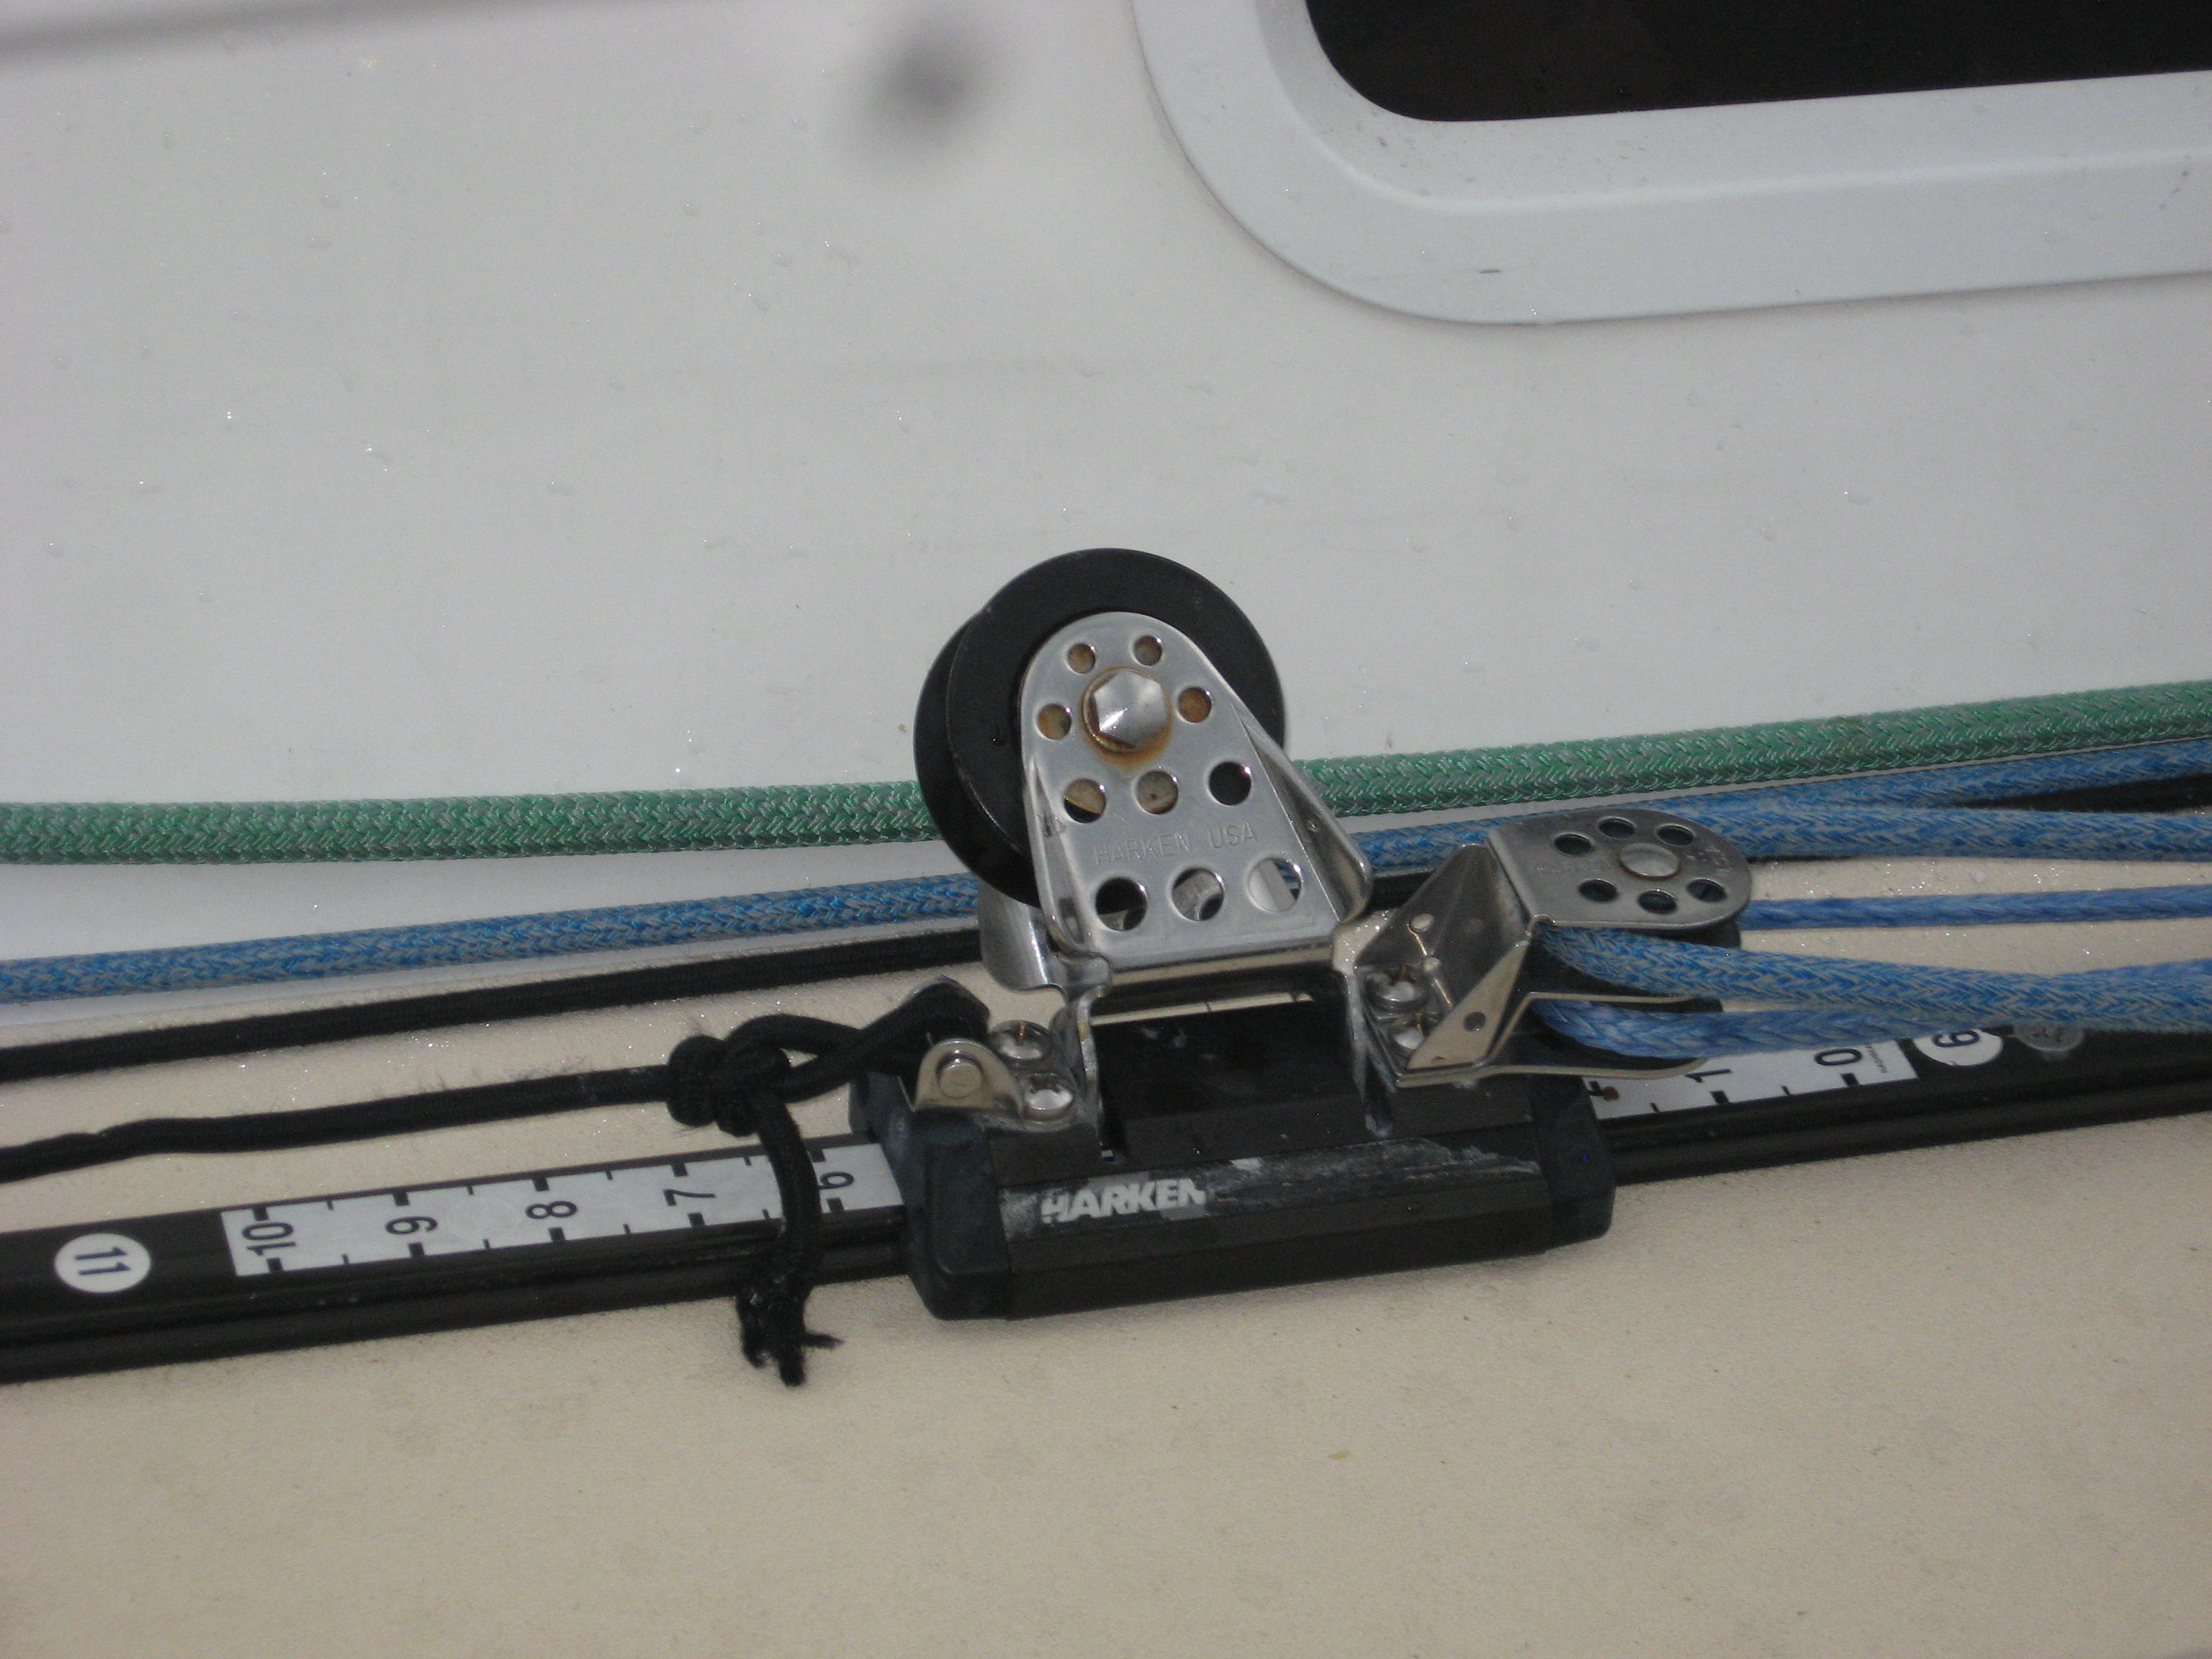 Harken lead adjuster on J109